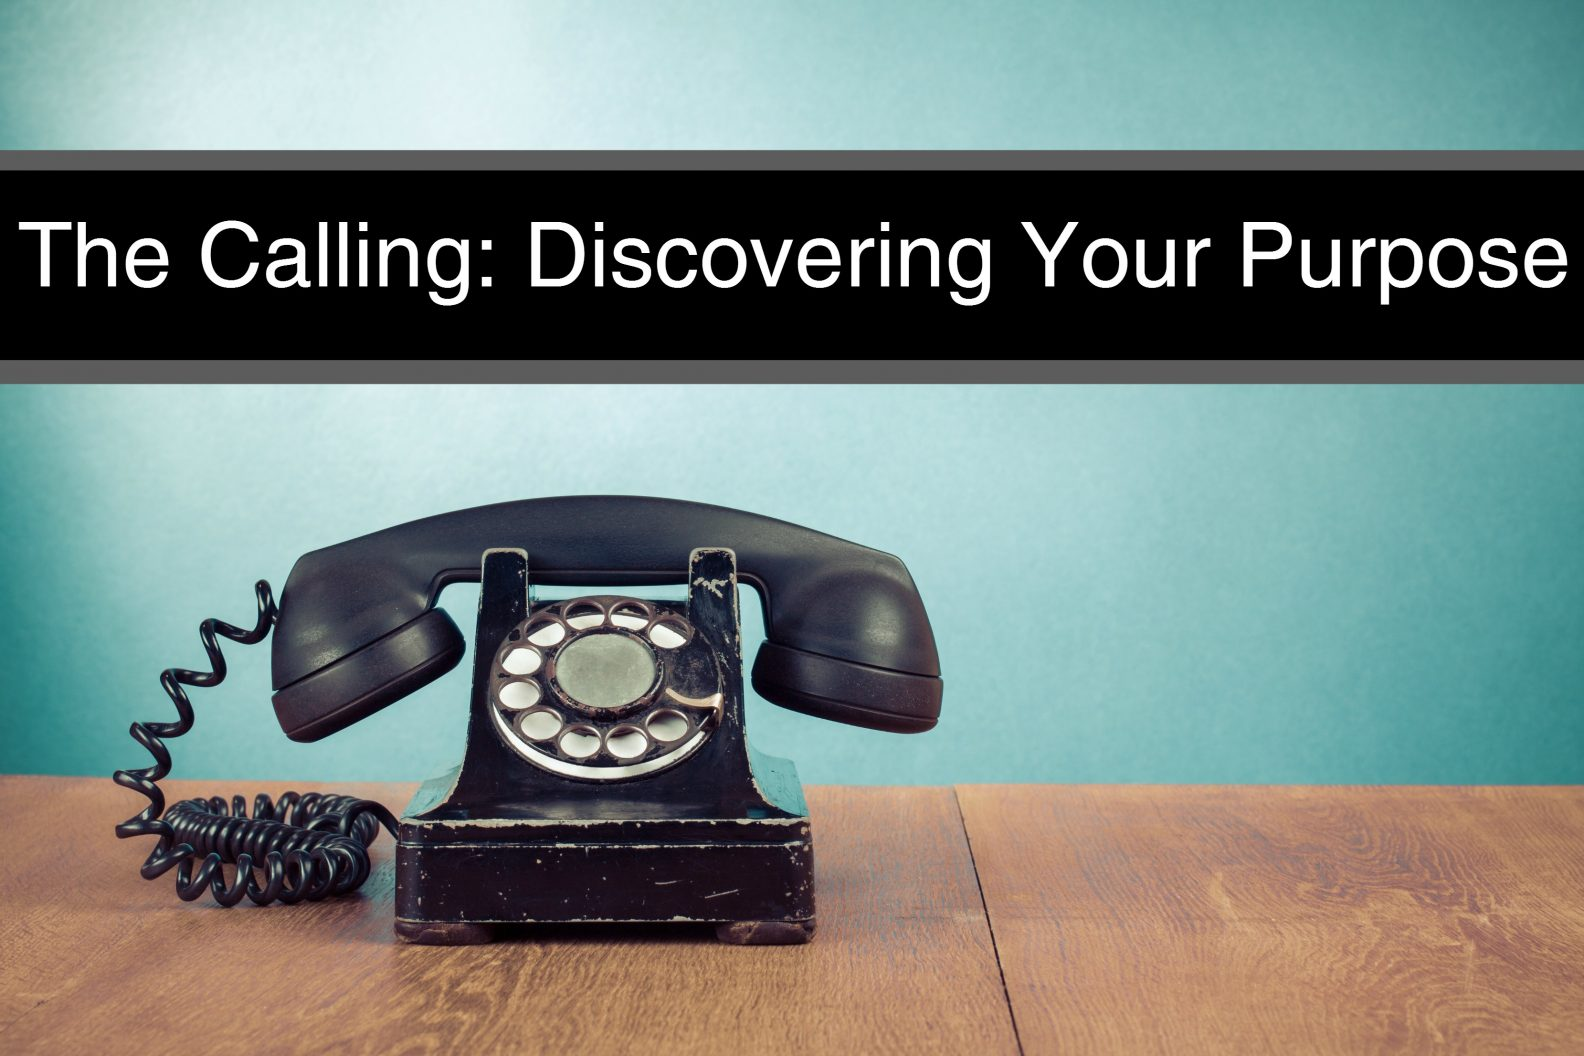 Sermon-Series-The-Calling-Discovering-Your-Purpose-1584x1056